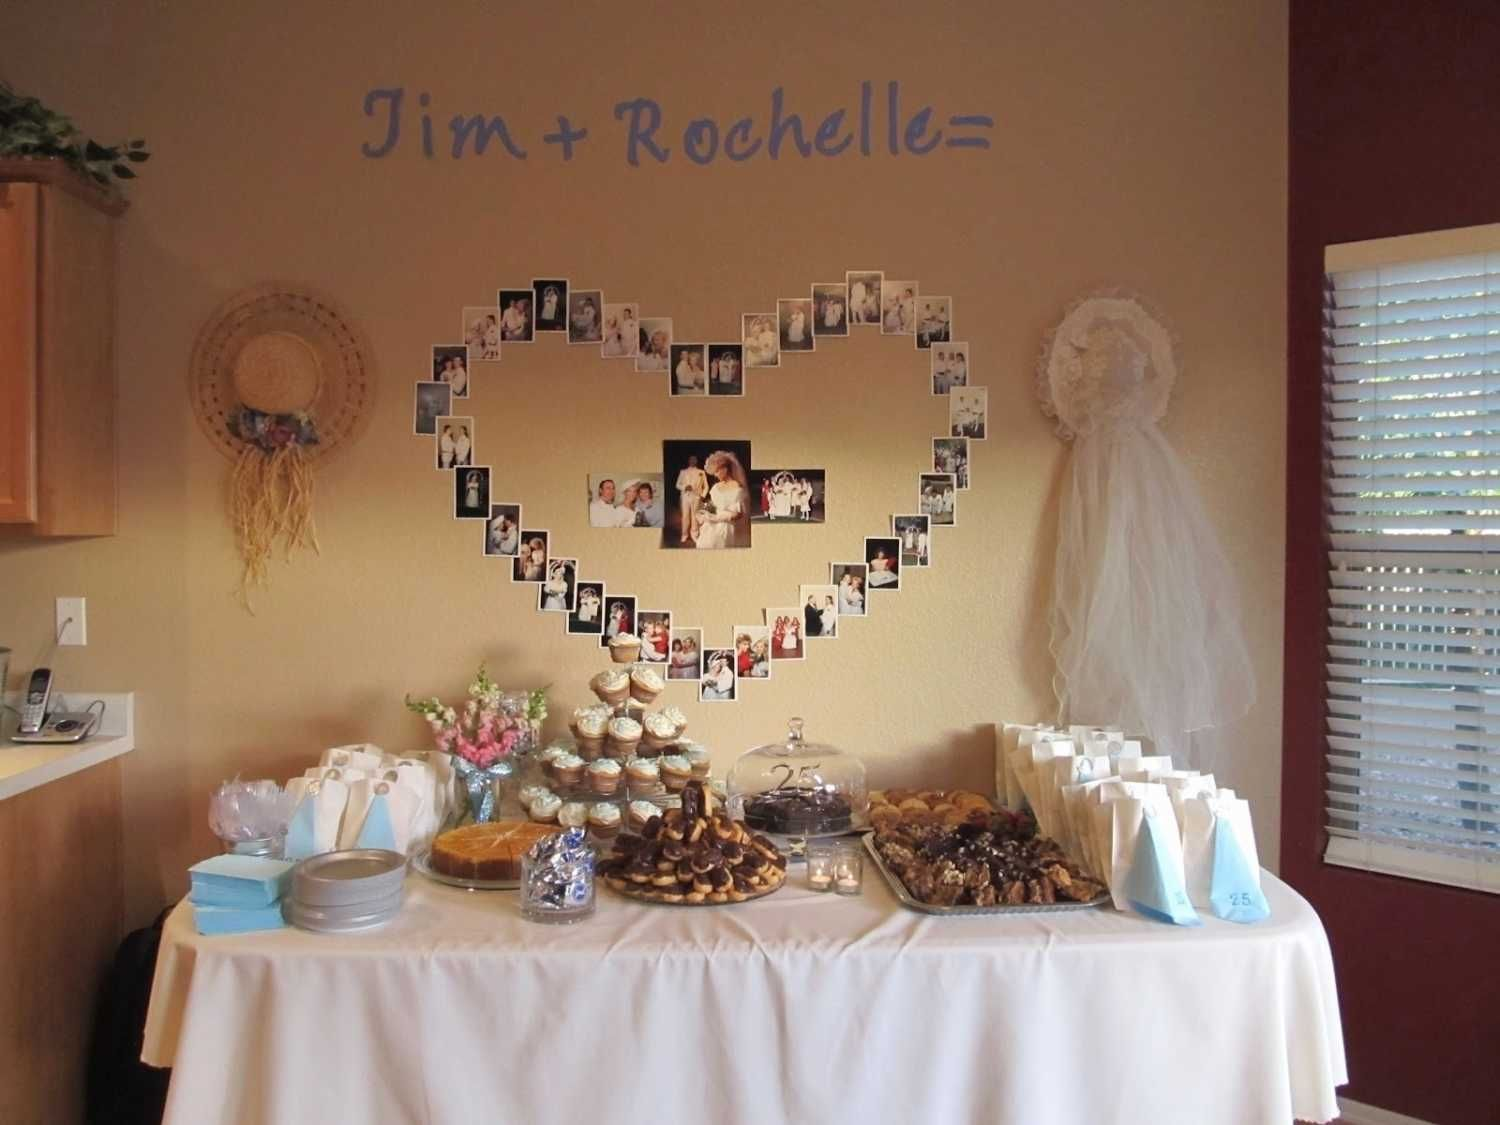 Wedding Anniversary Decorations Ideas At Home Decoration For Weddi Wedding Anniversary Decorations Anniversary Decorations 60th Wedding Anniversary Decorations